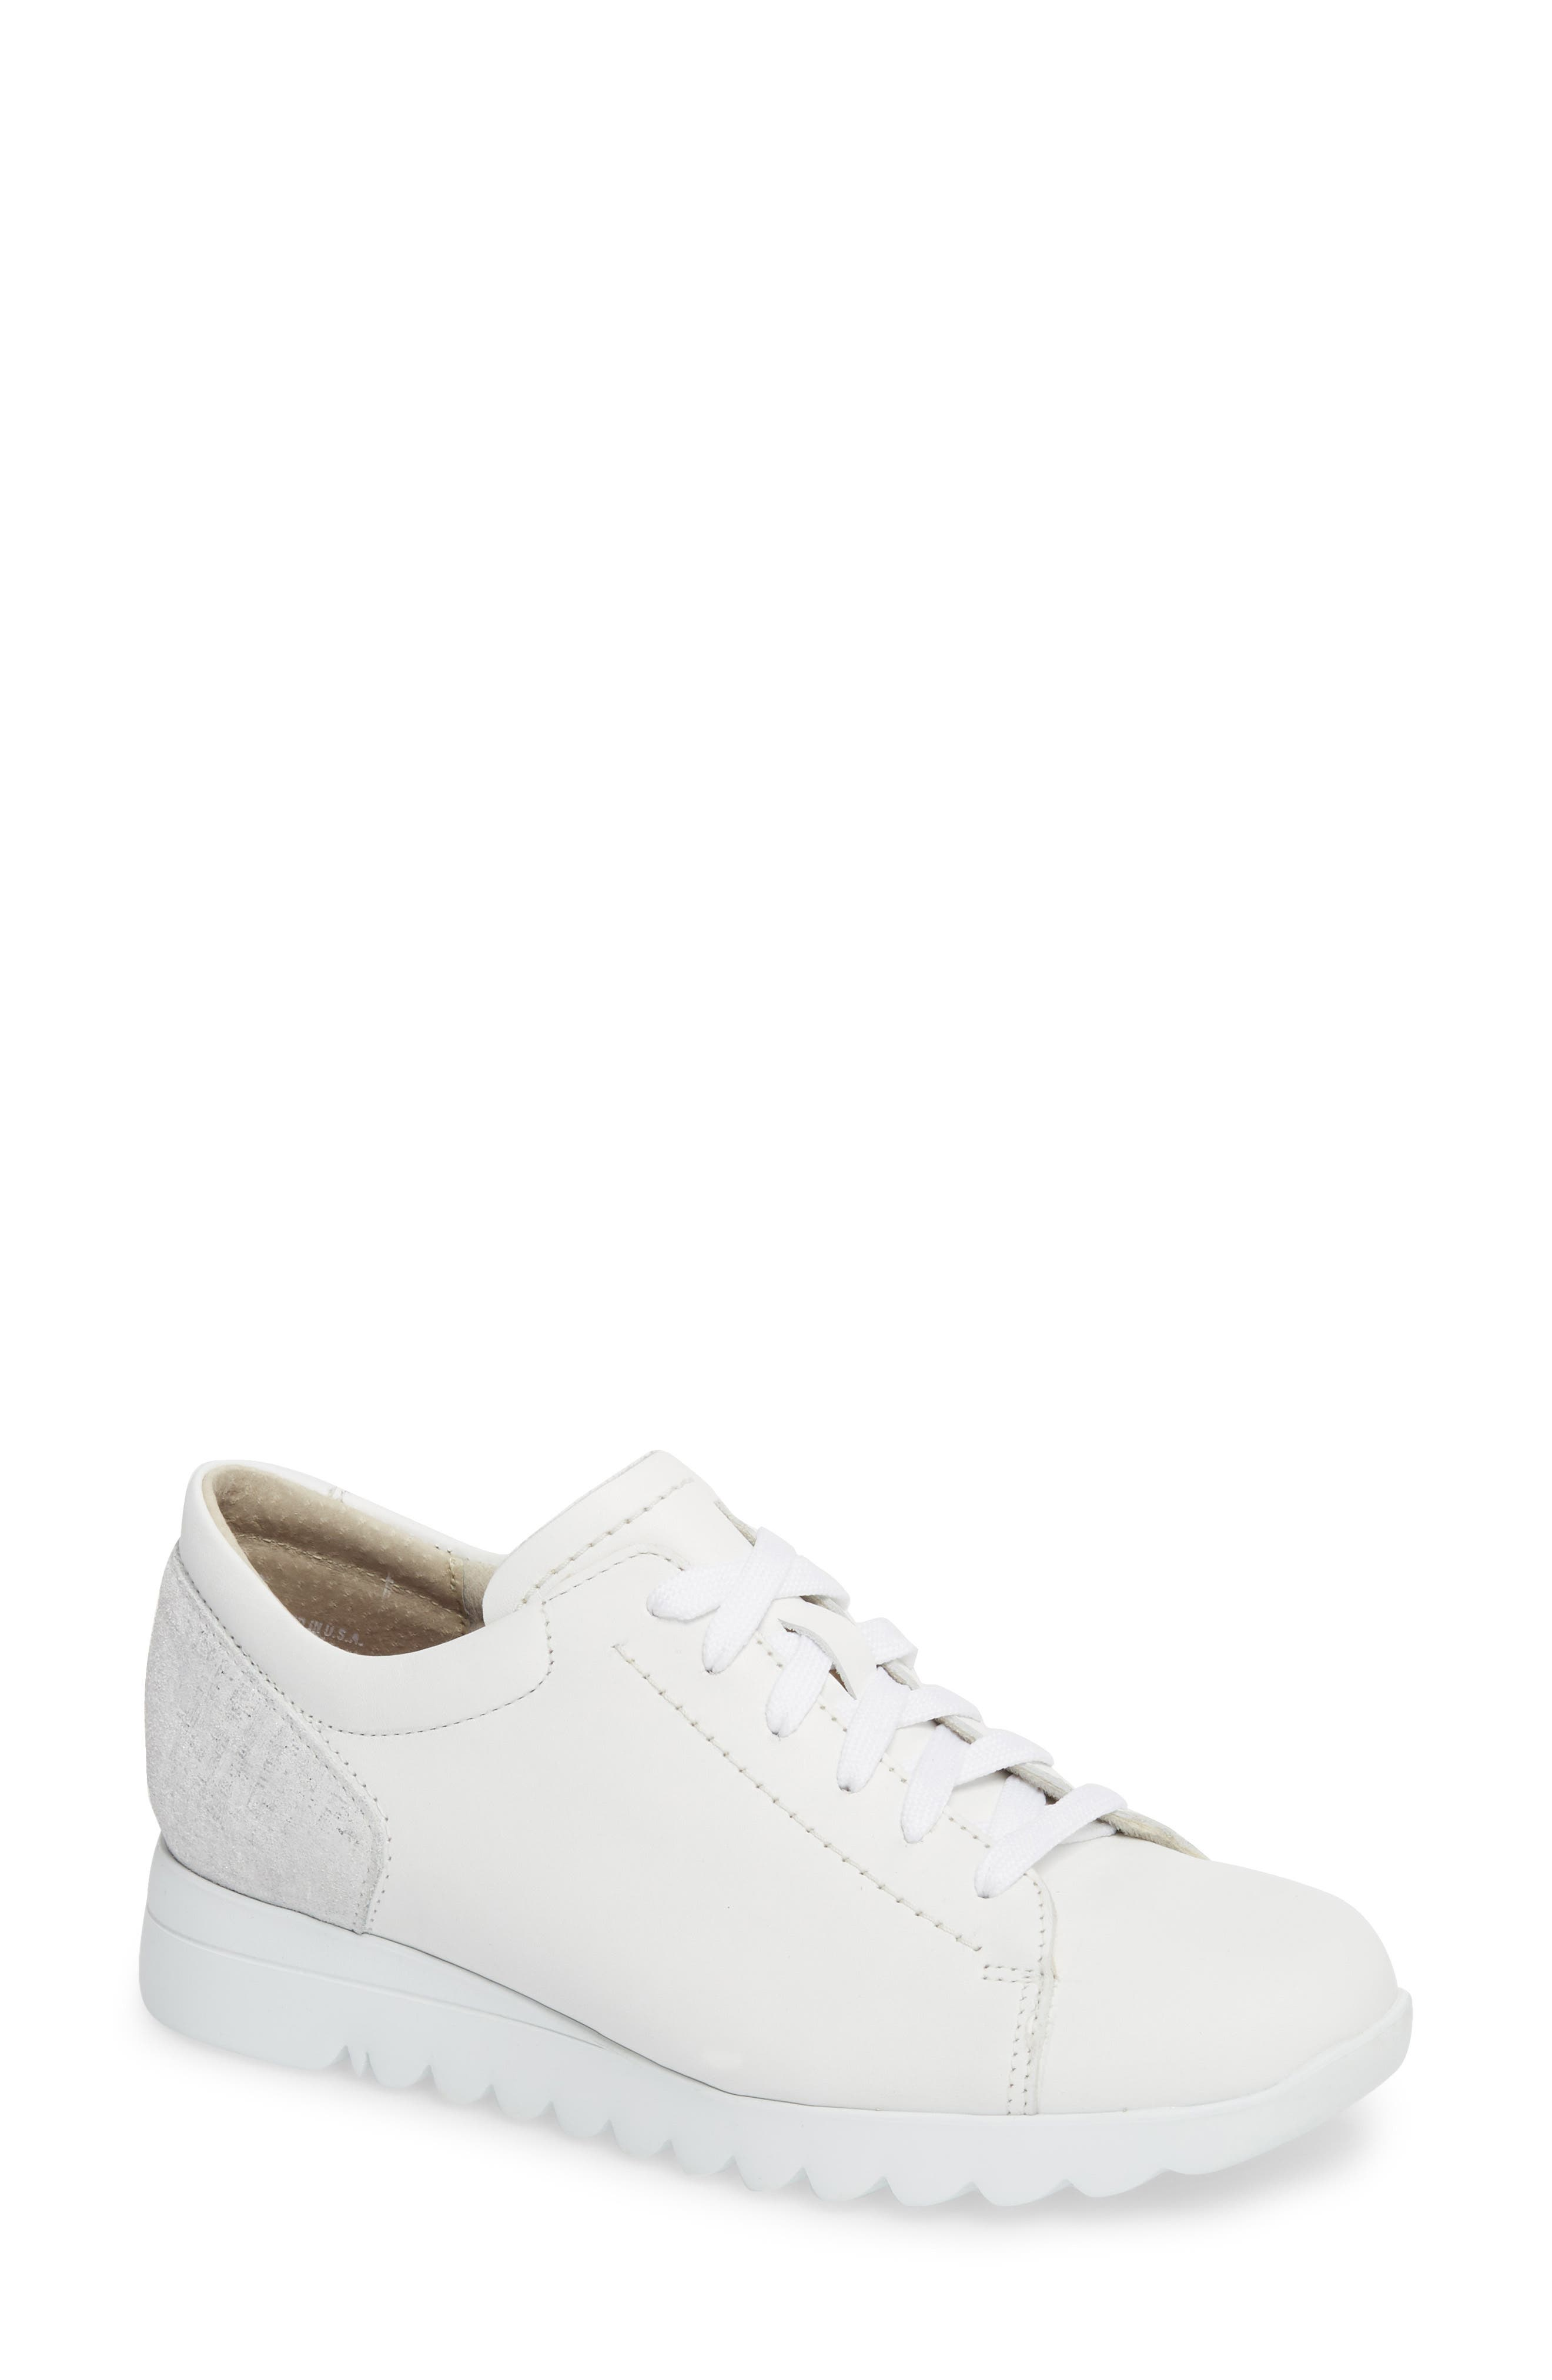 MUNRO Kellee Derby in White/ Silver Leather